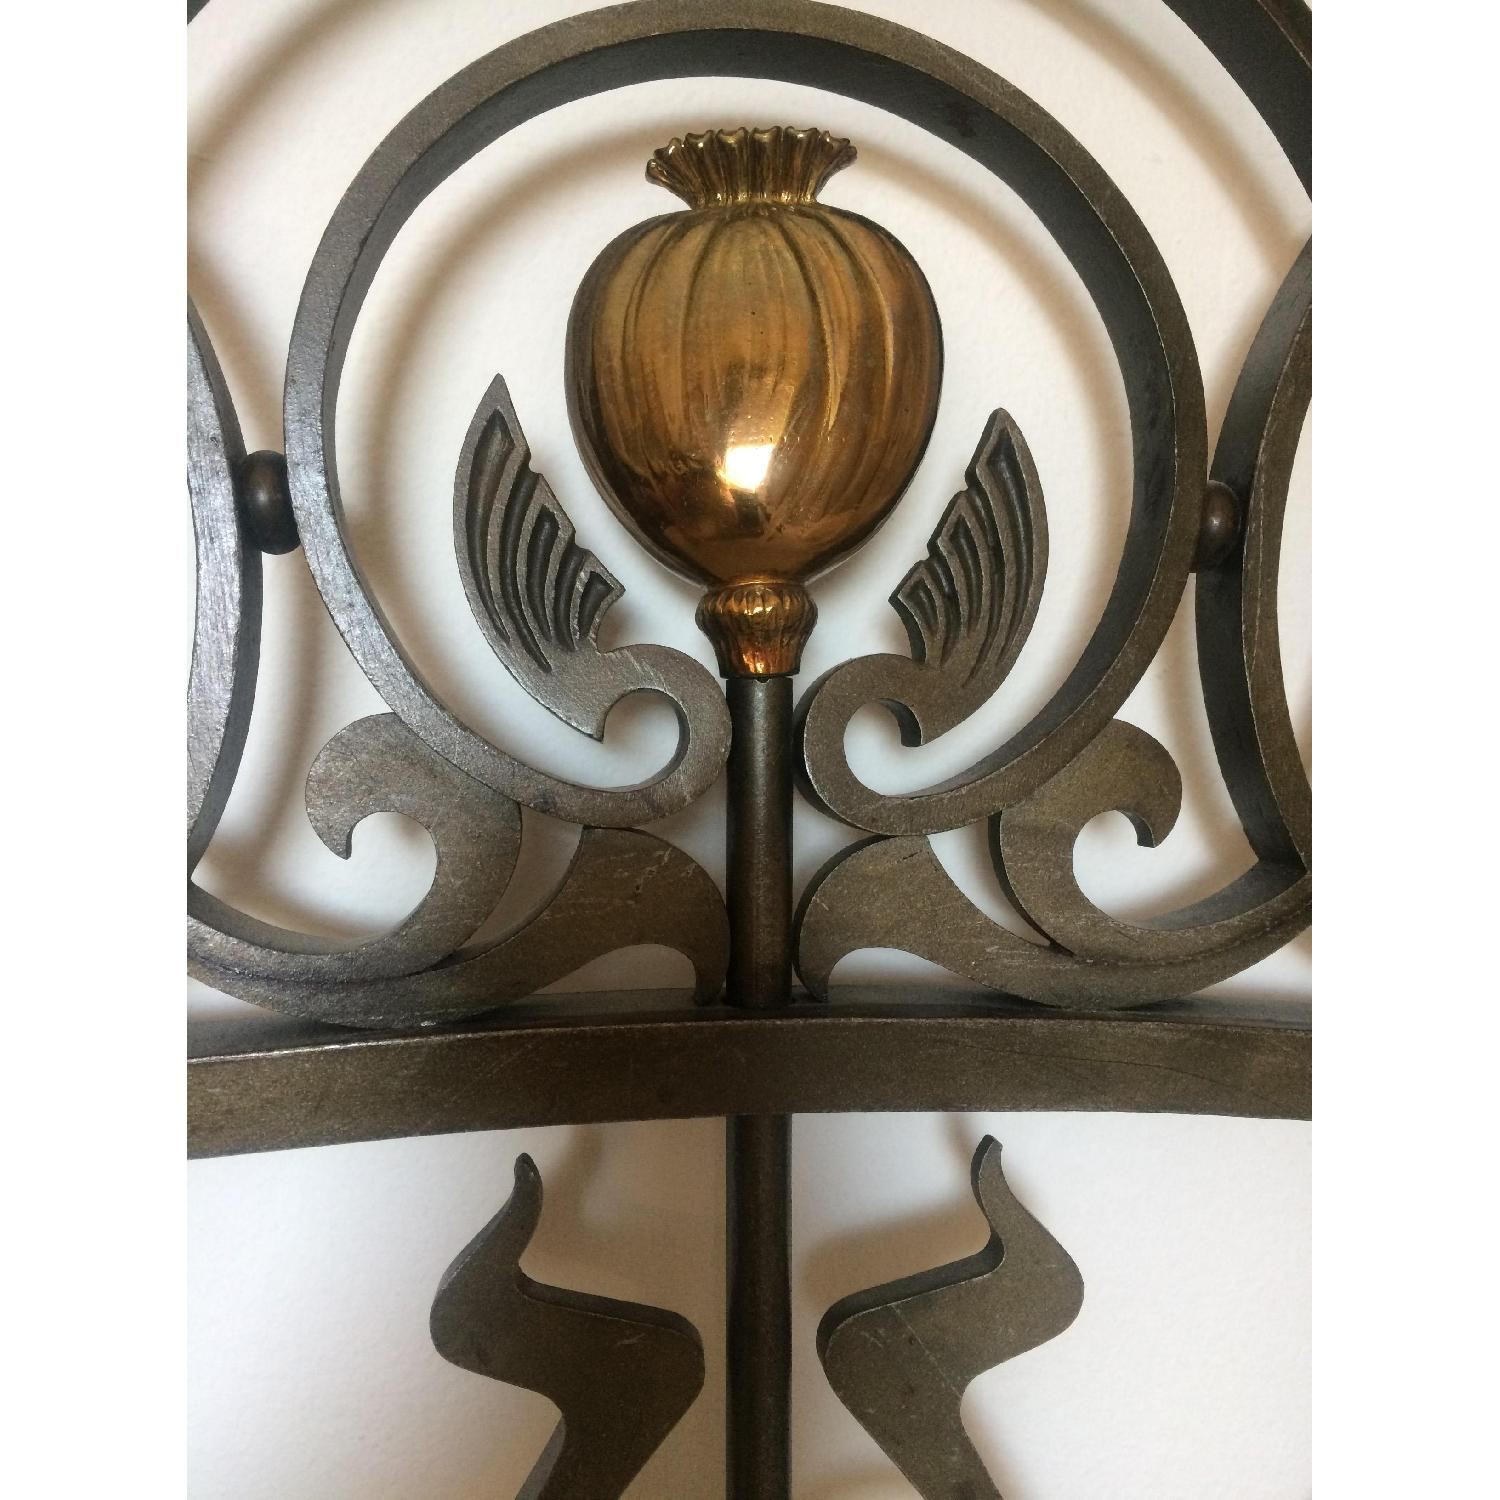 Early 20th-Century French Art Nouveau Wrought Iron and Gilt Bronze Headboard - image-7